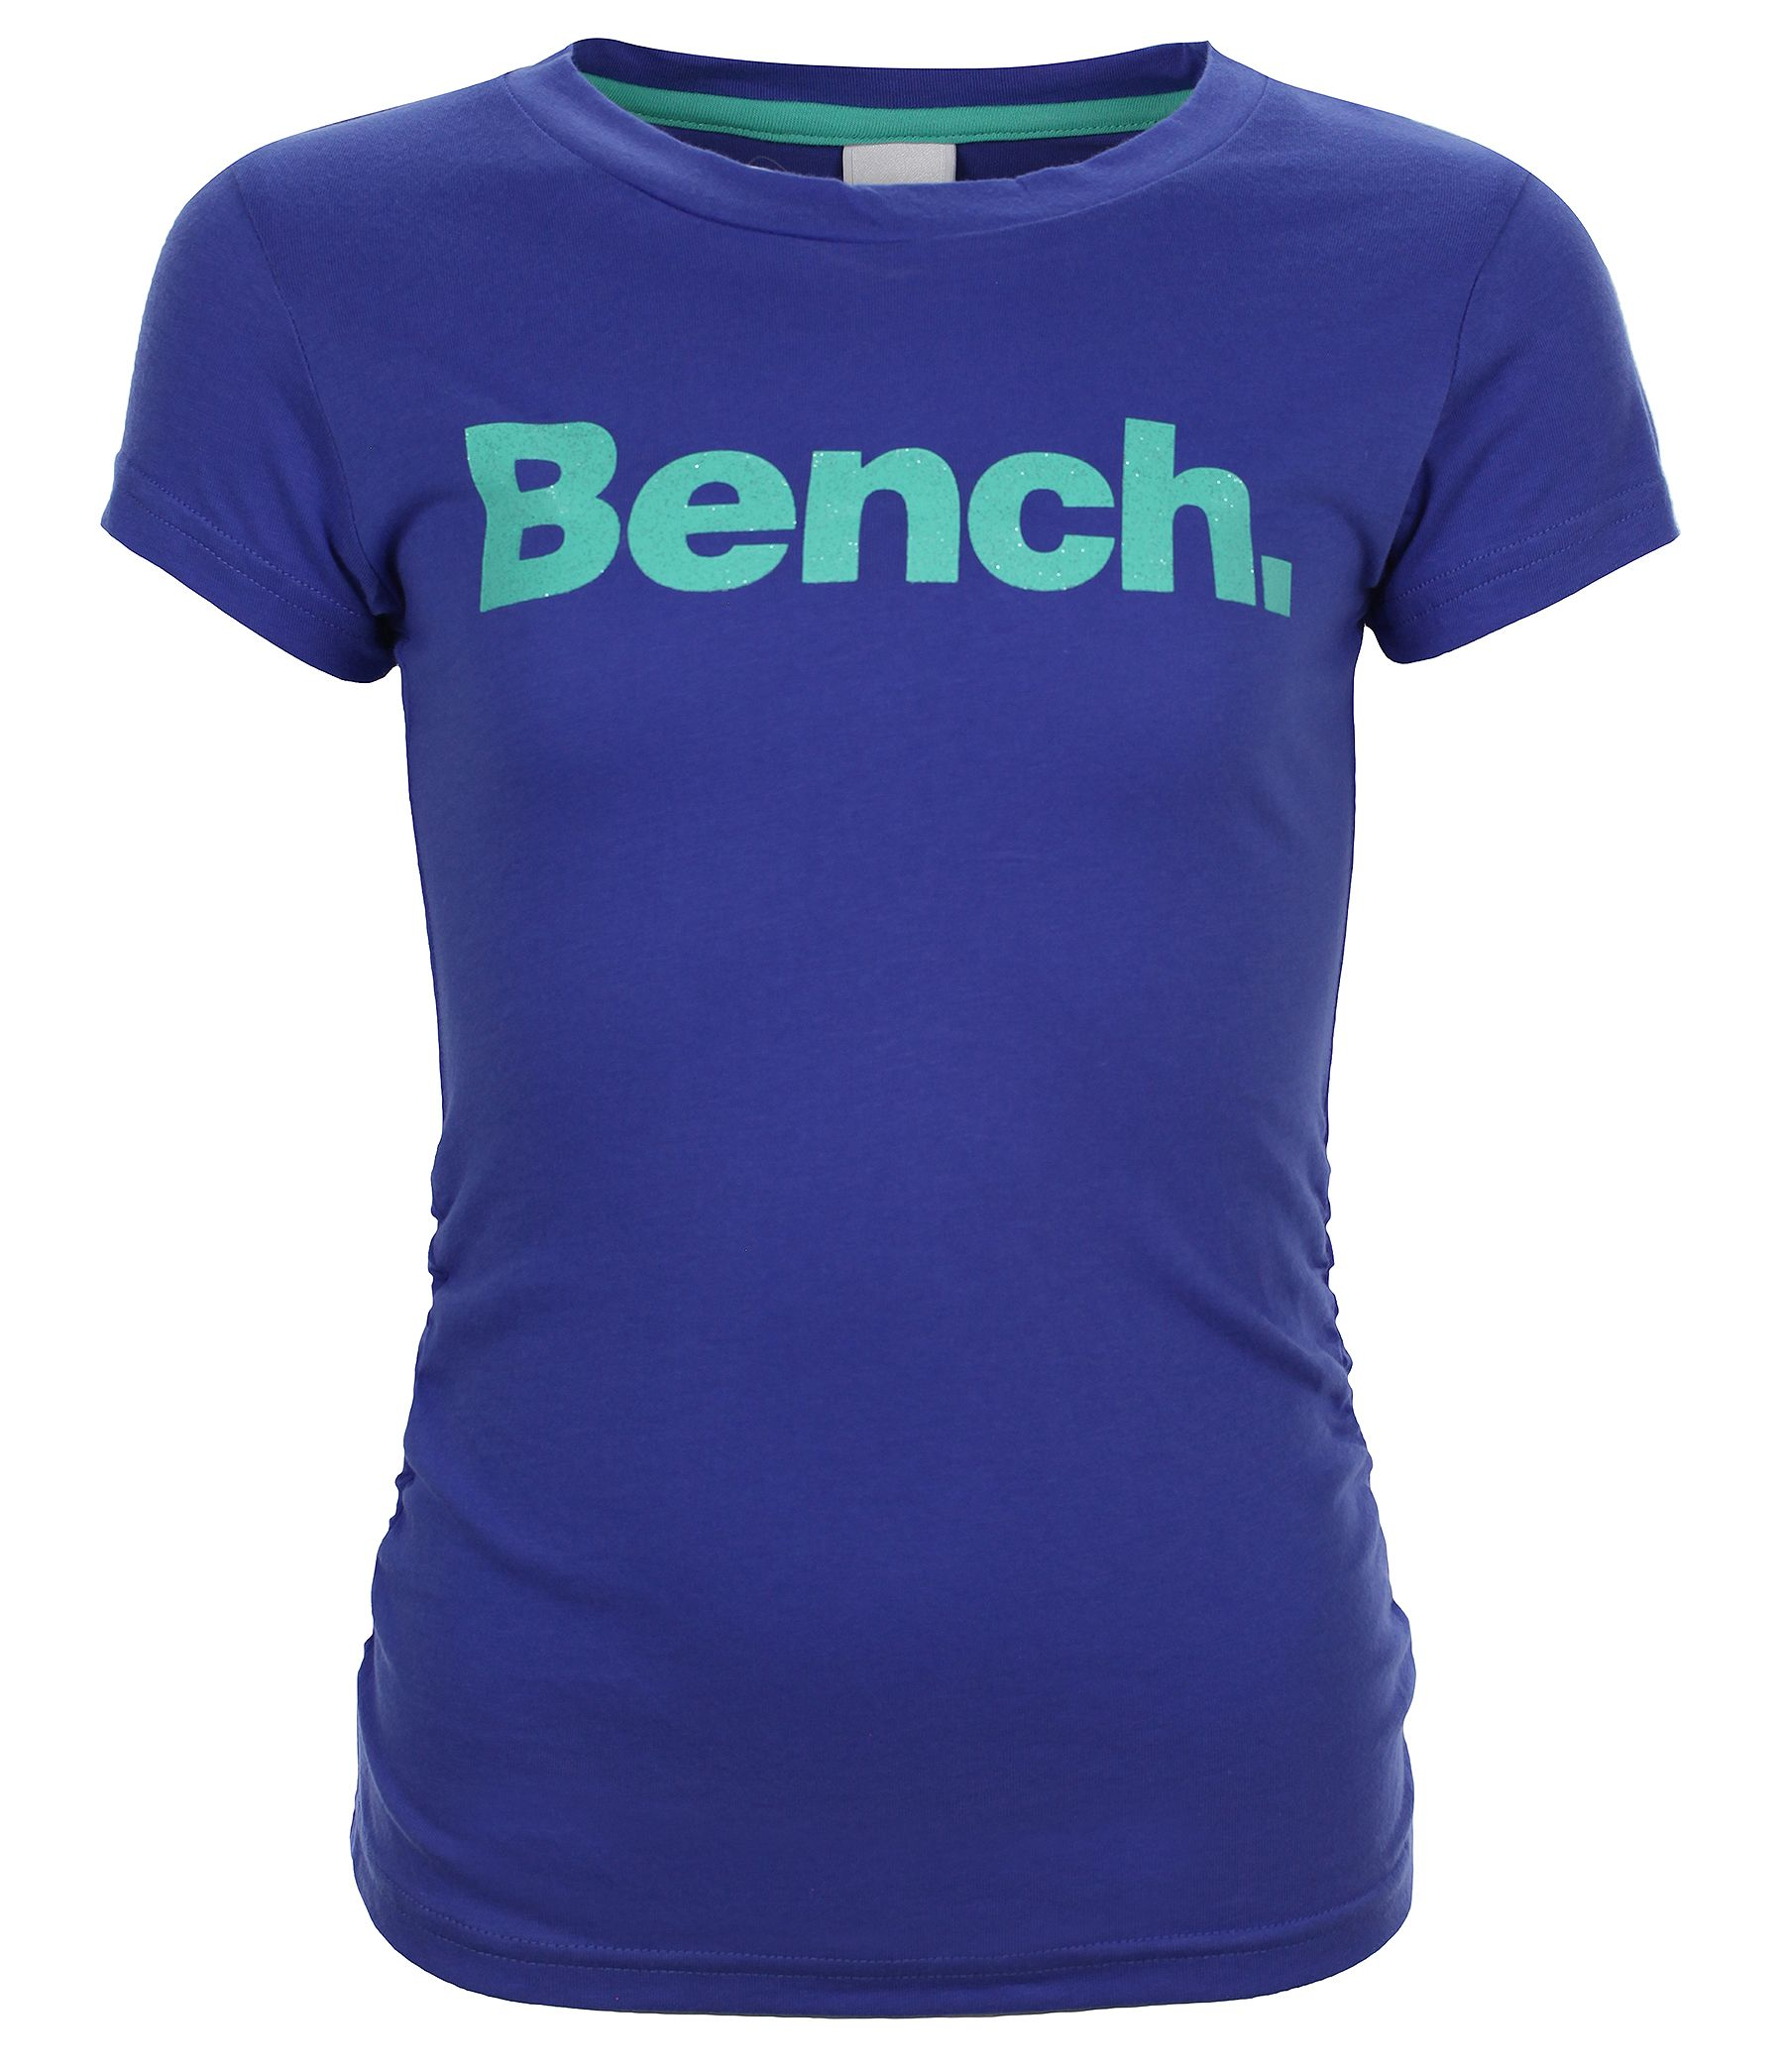 Bench Girl`s new deckstar b t-shirt